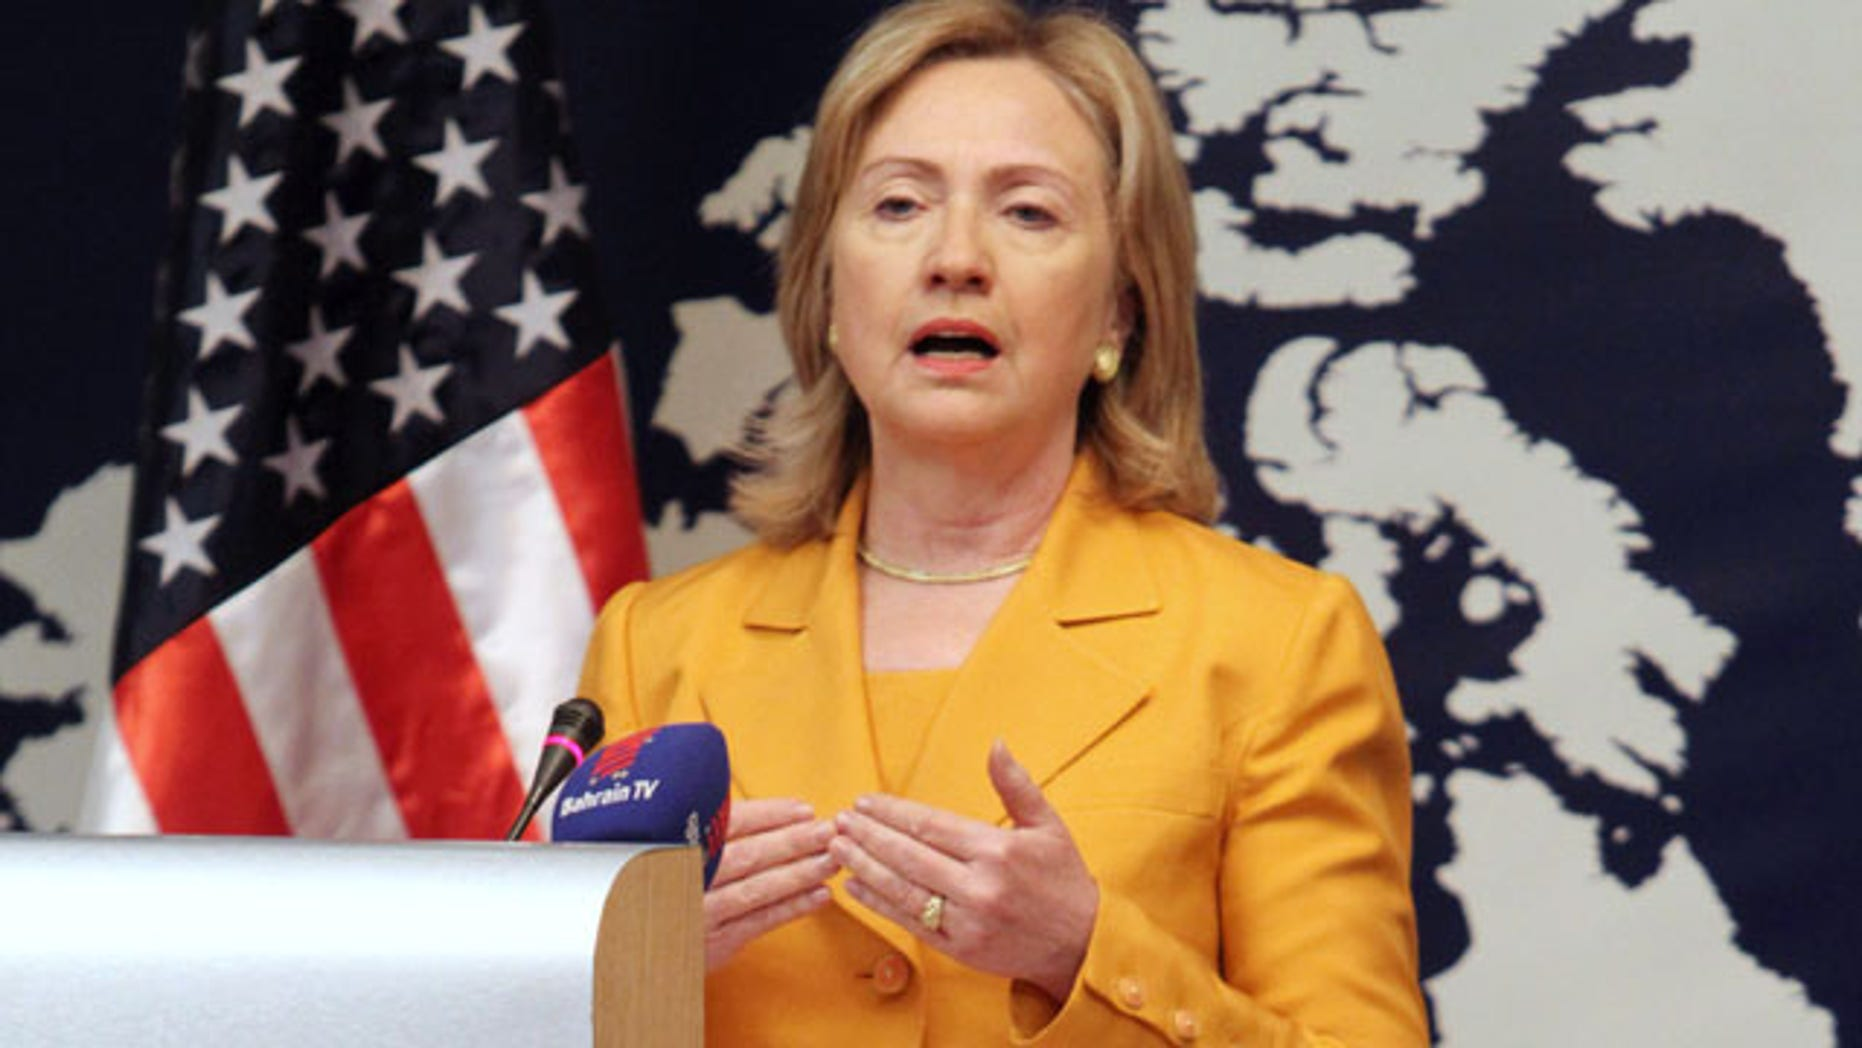 Dec. 3: U.S. Secretary of State Hillary Clinton speaks at a press conference in Manama, Bahrain.